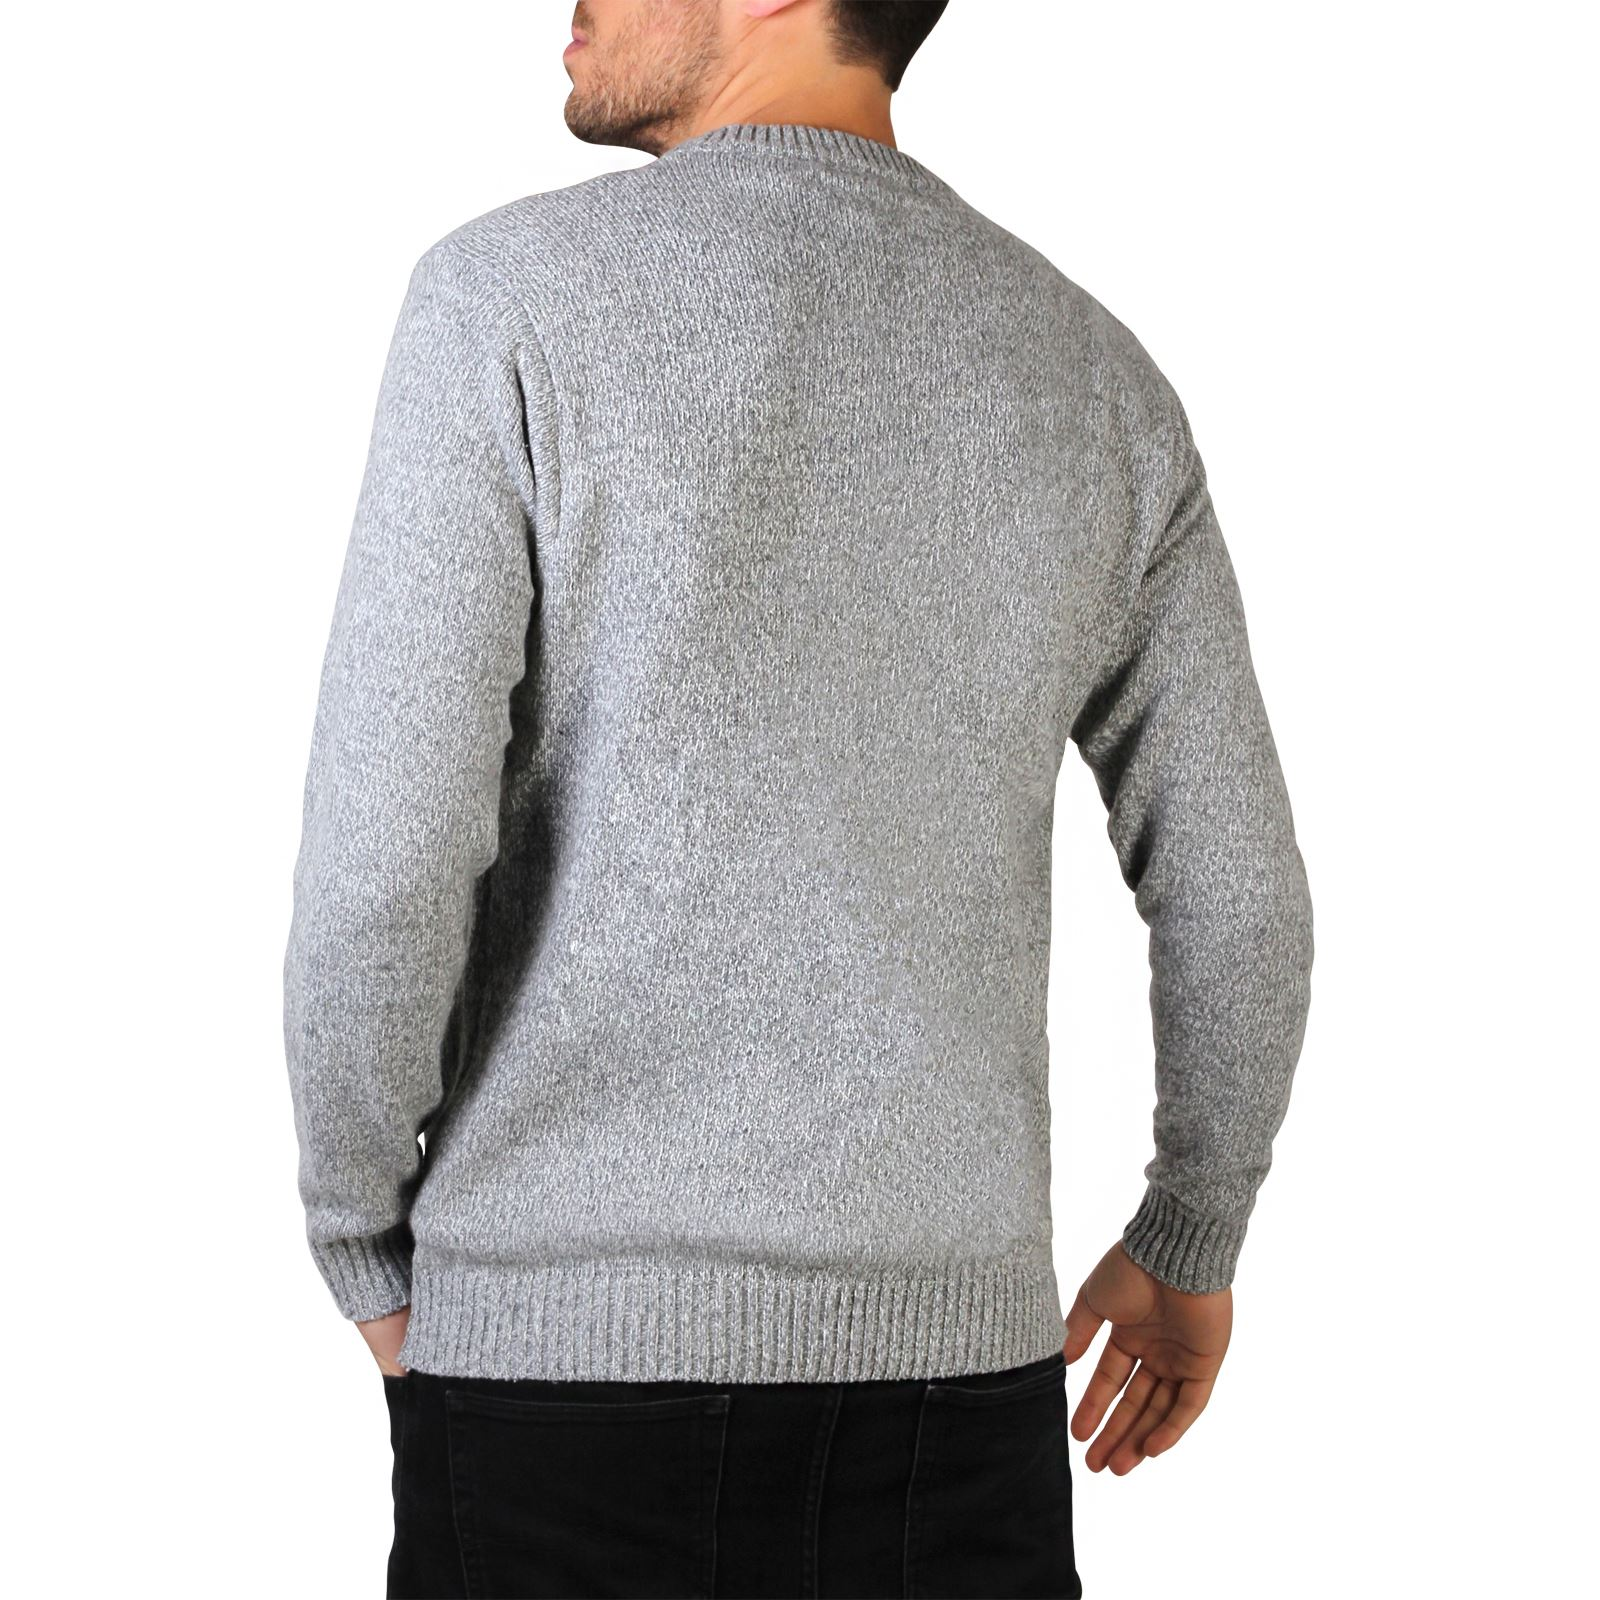 Mens-Soft-Knitted-Round-Crew-Neck-Warm-Jumper-Sweater-Grandad-Pullover-Top thumbnail 7